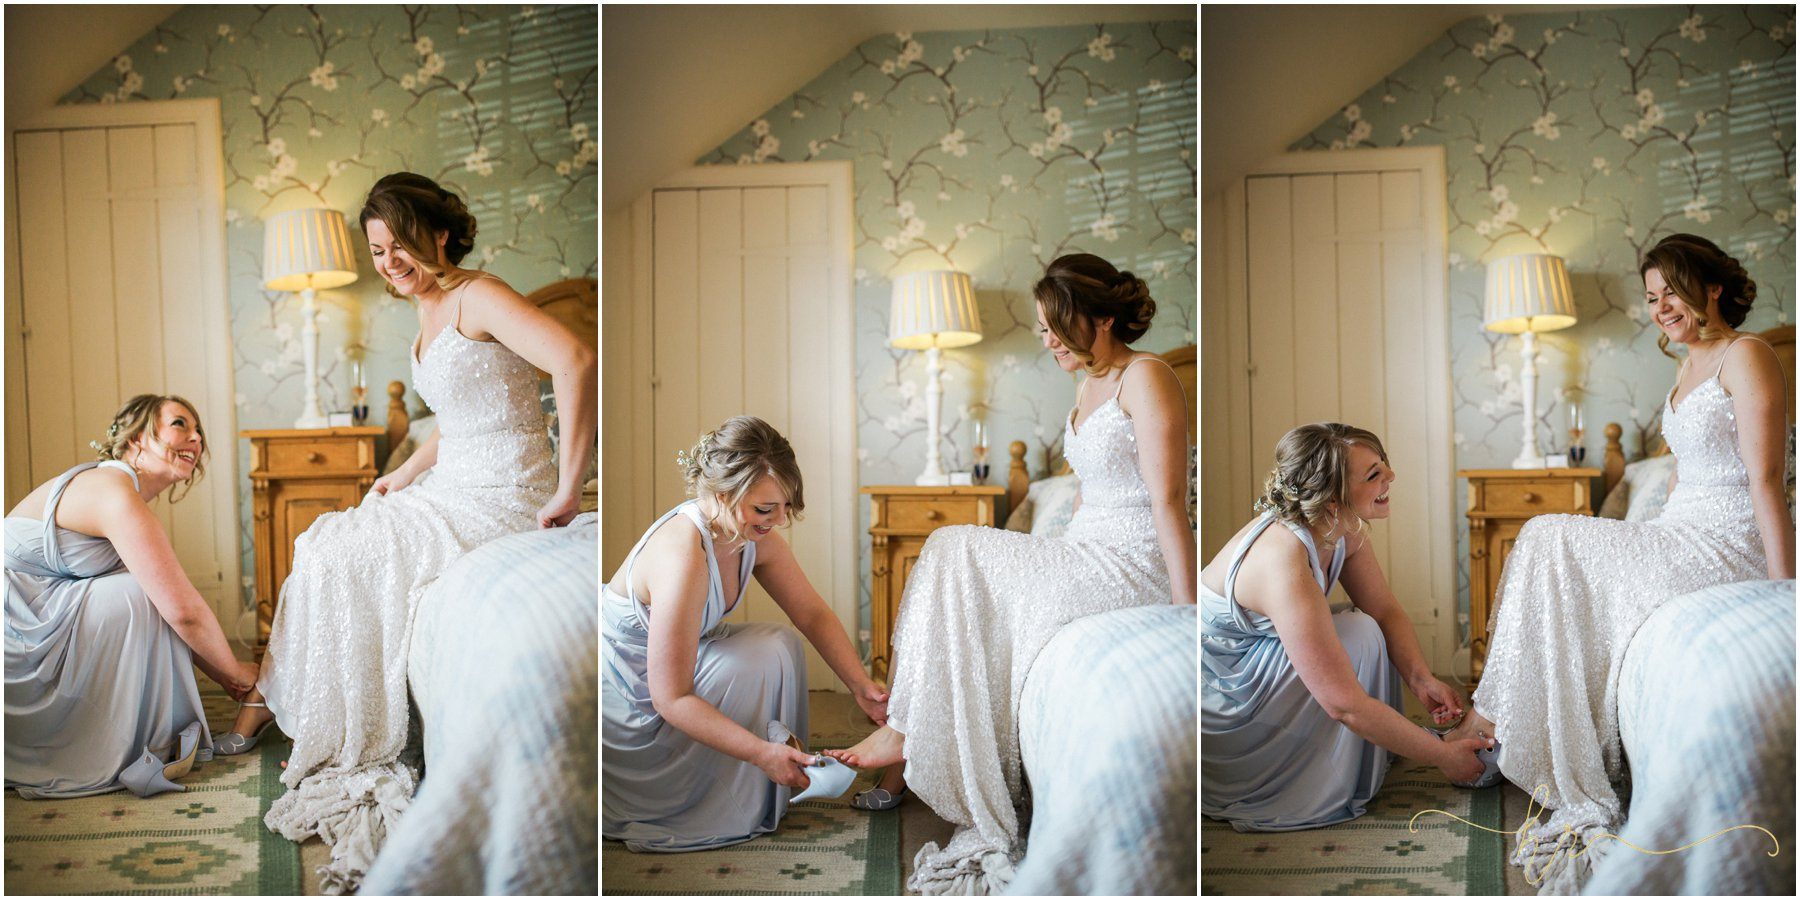 Doxford-Barn-Wedding-Photography_0048